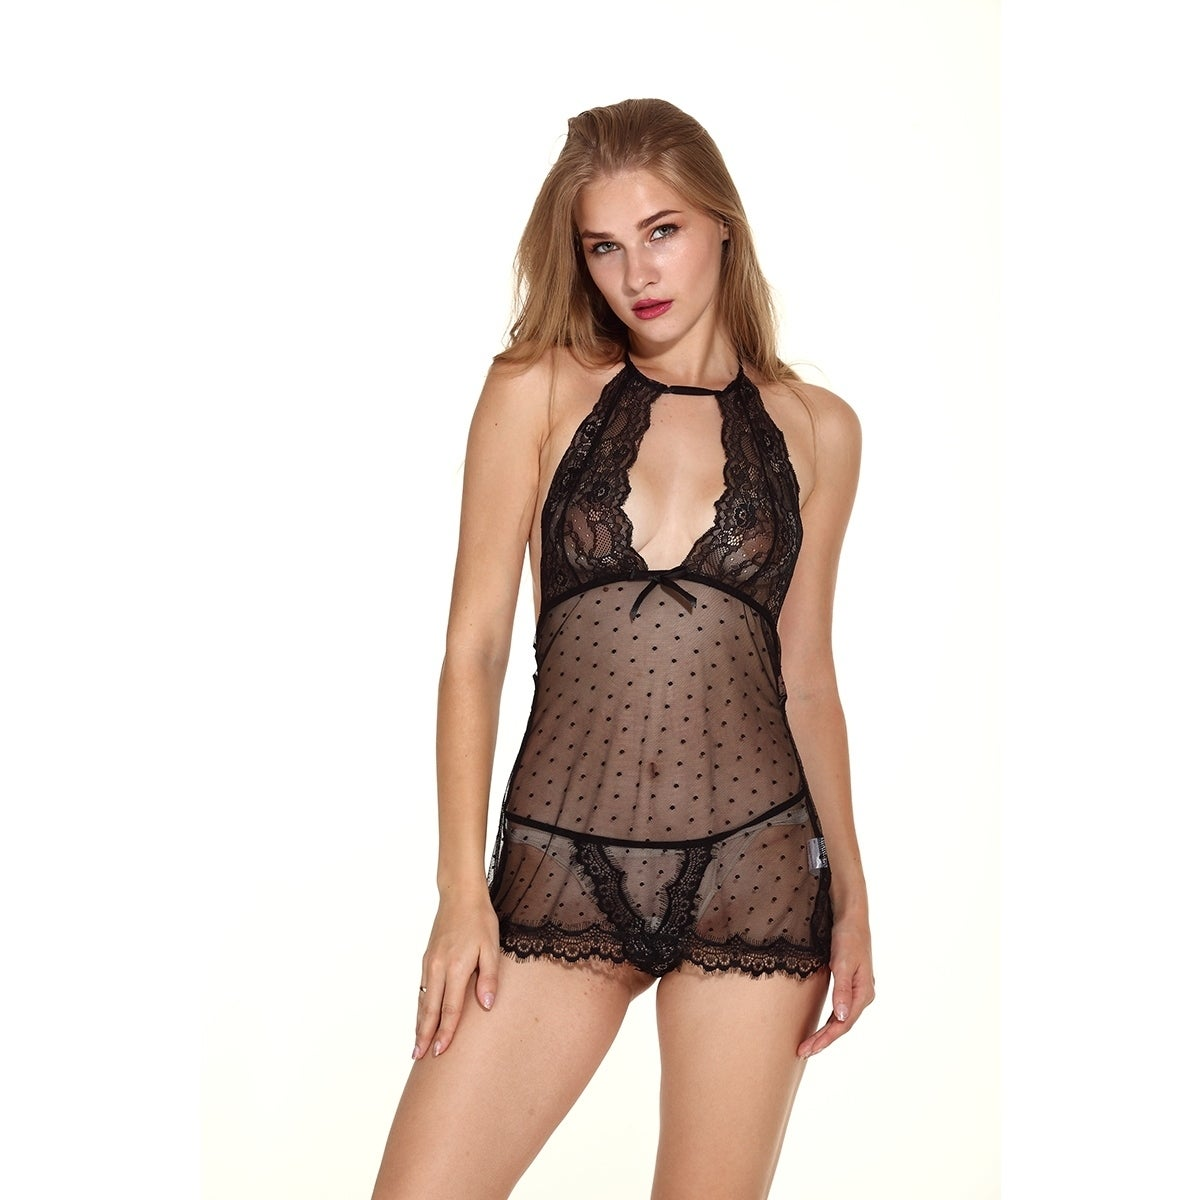 d36894217 Shop Women Sexy Lace Babydoll Lingerie Set Transparent Mesh Chemise  Nightwear - Free Shipping On Orders Over  45 - Overstock - 18183360